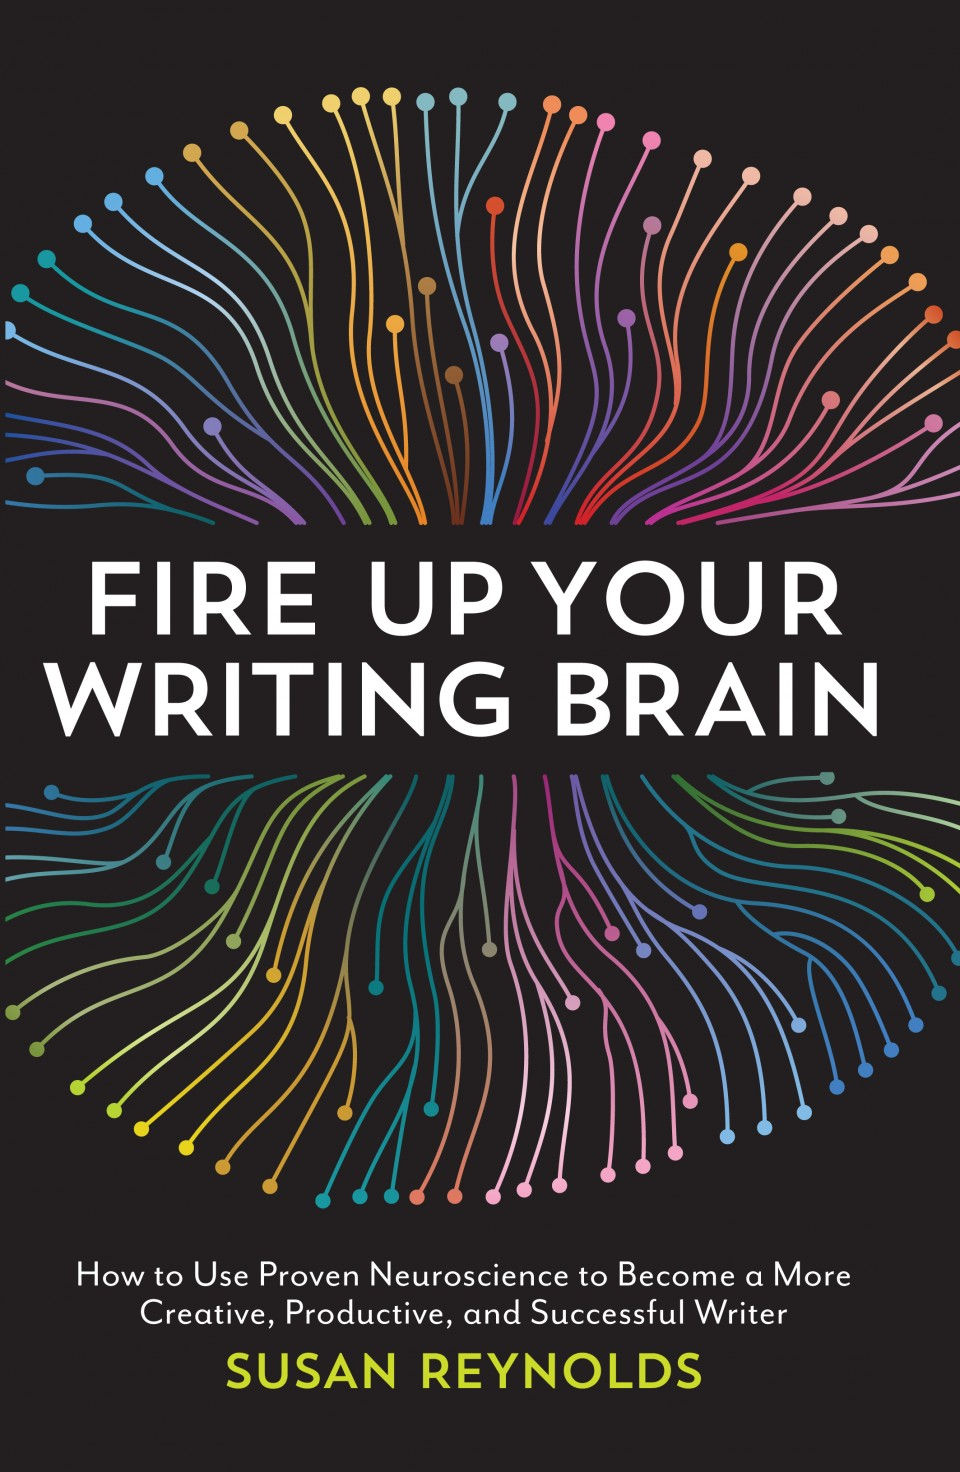 023 Fire Up Your Writing Brain Essay Example Outstanding Brainstorming Techniques Topics College 960